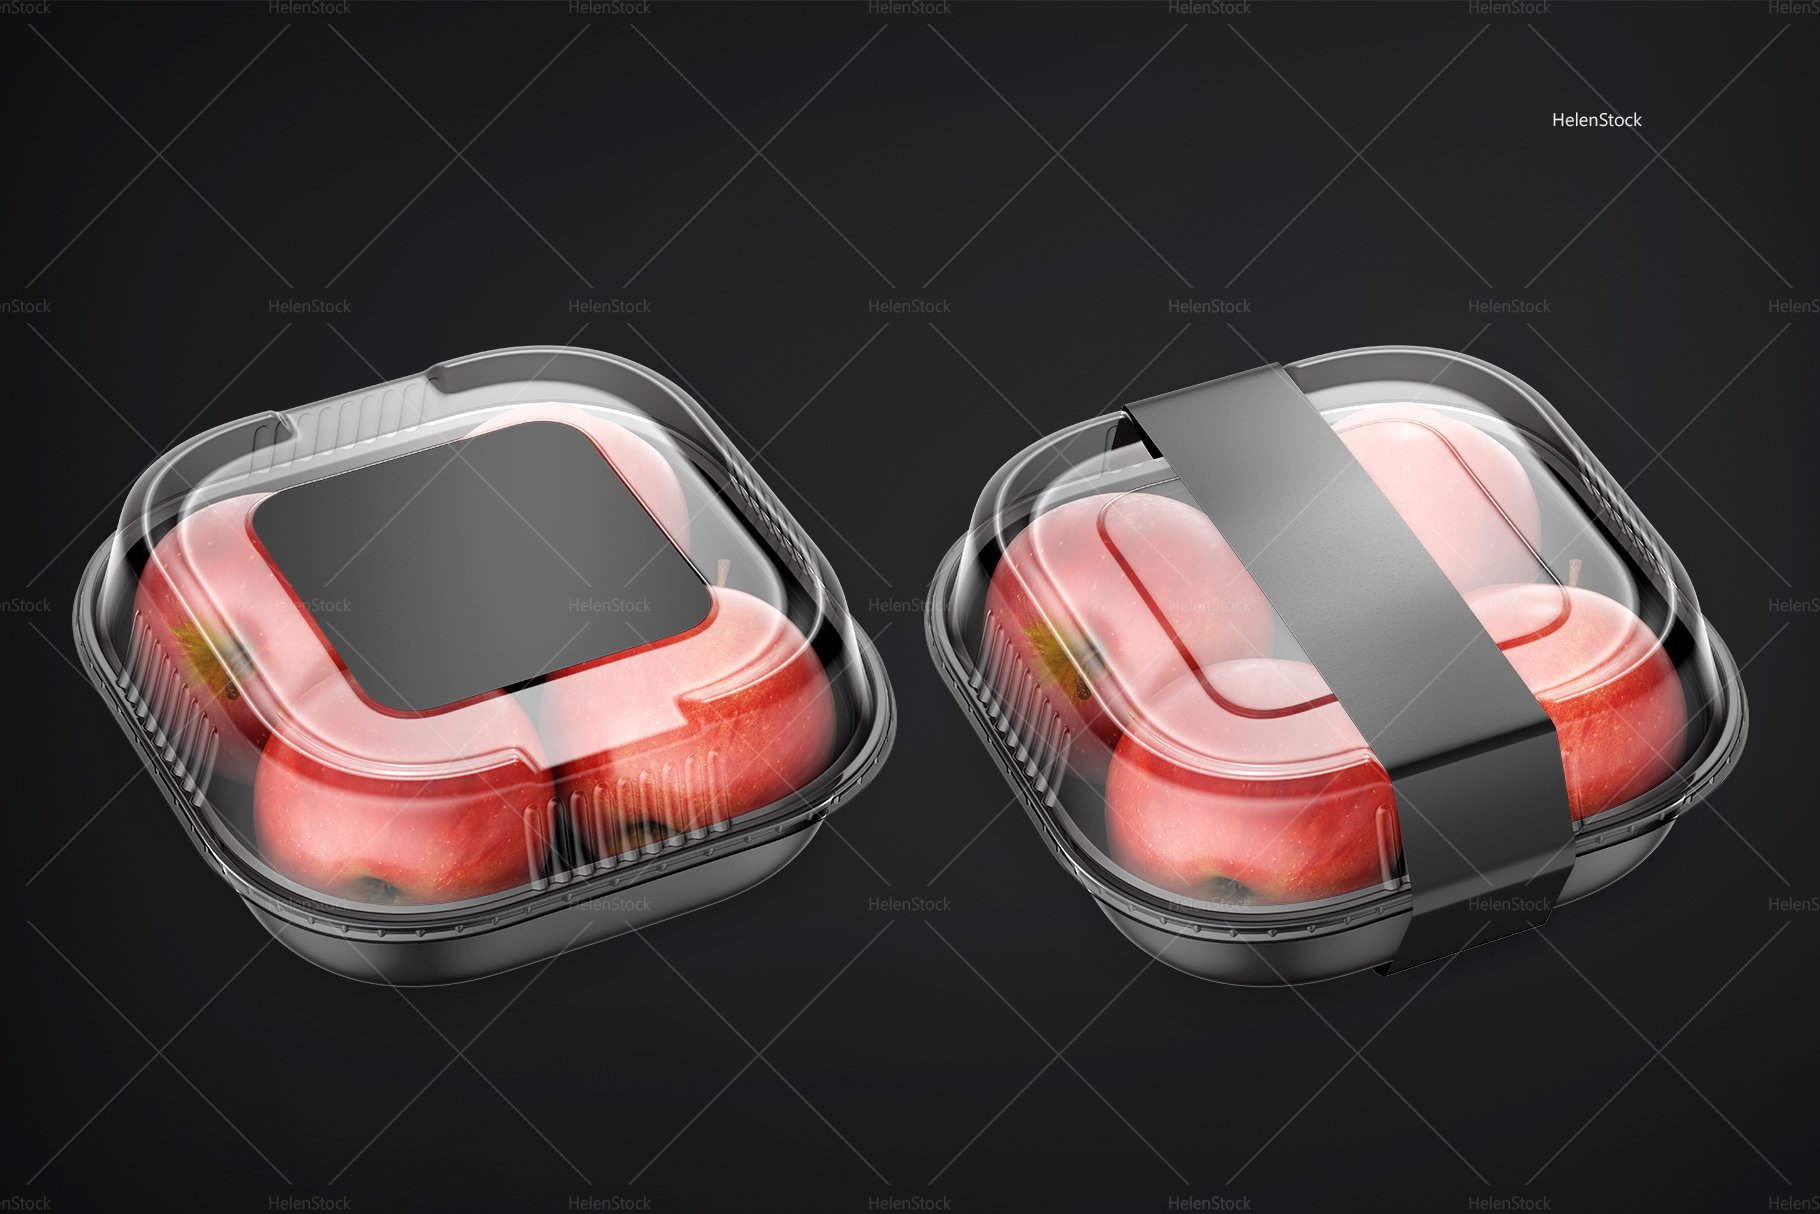 Plastic Container with Apples Mockup Black